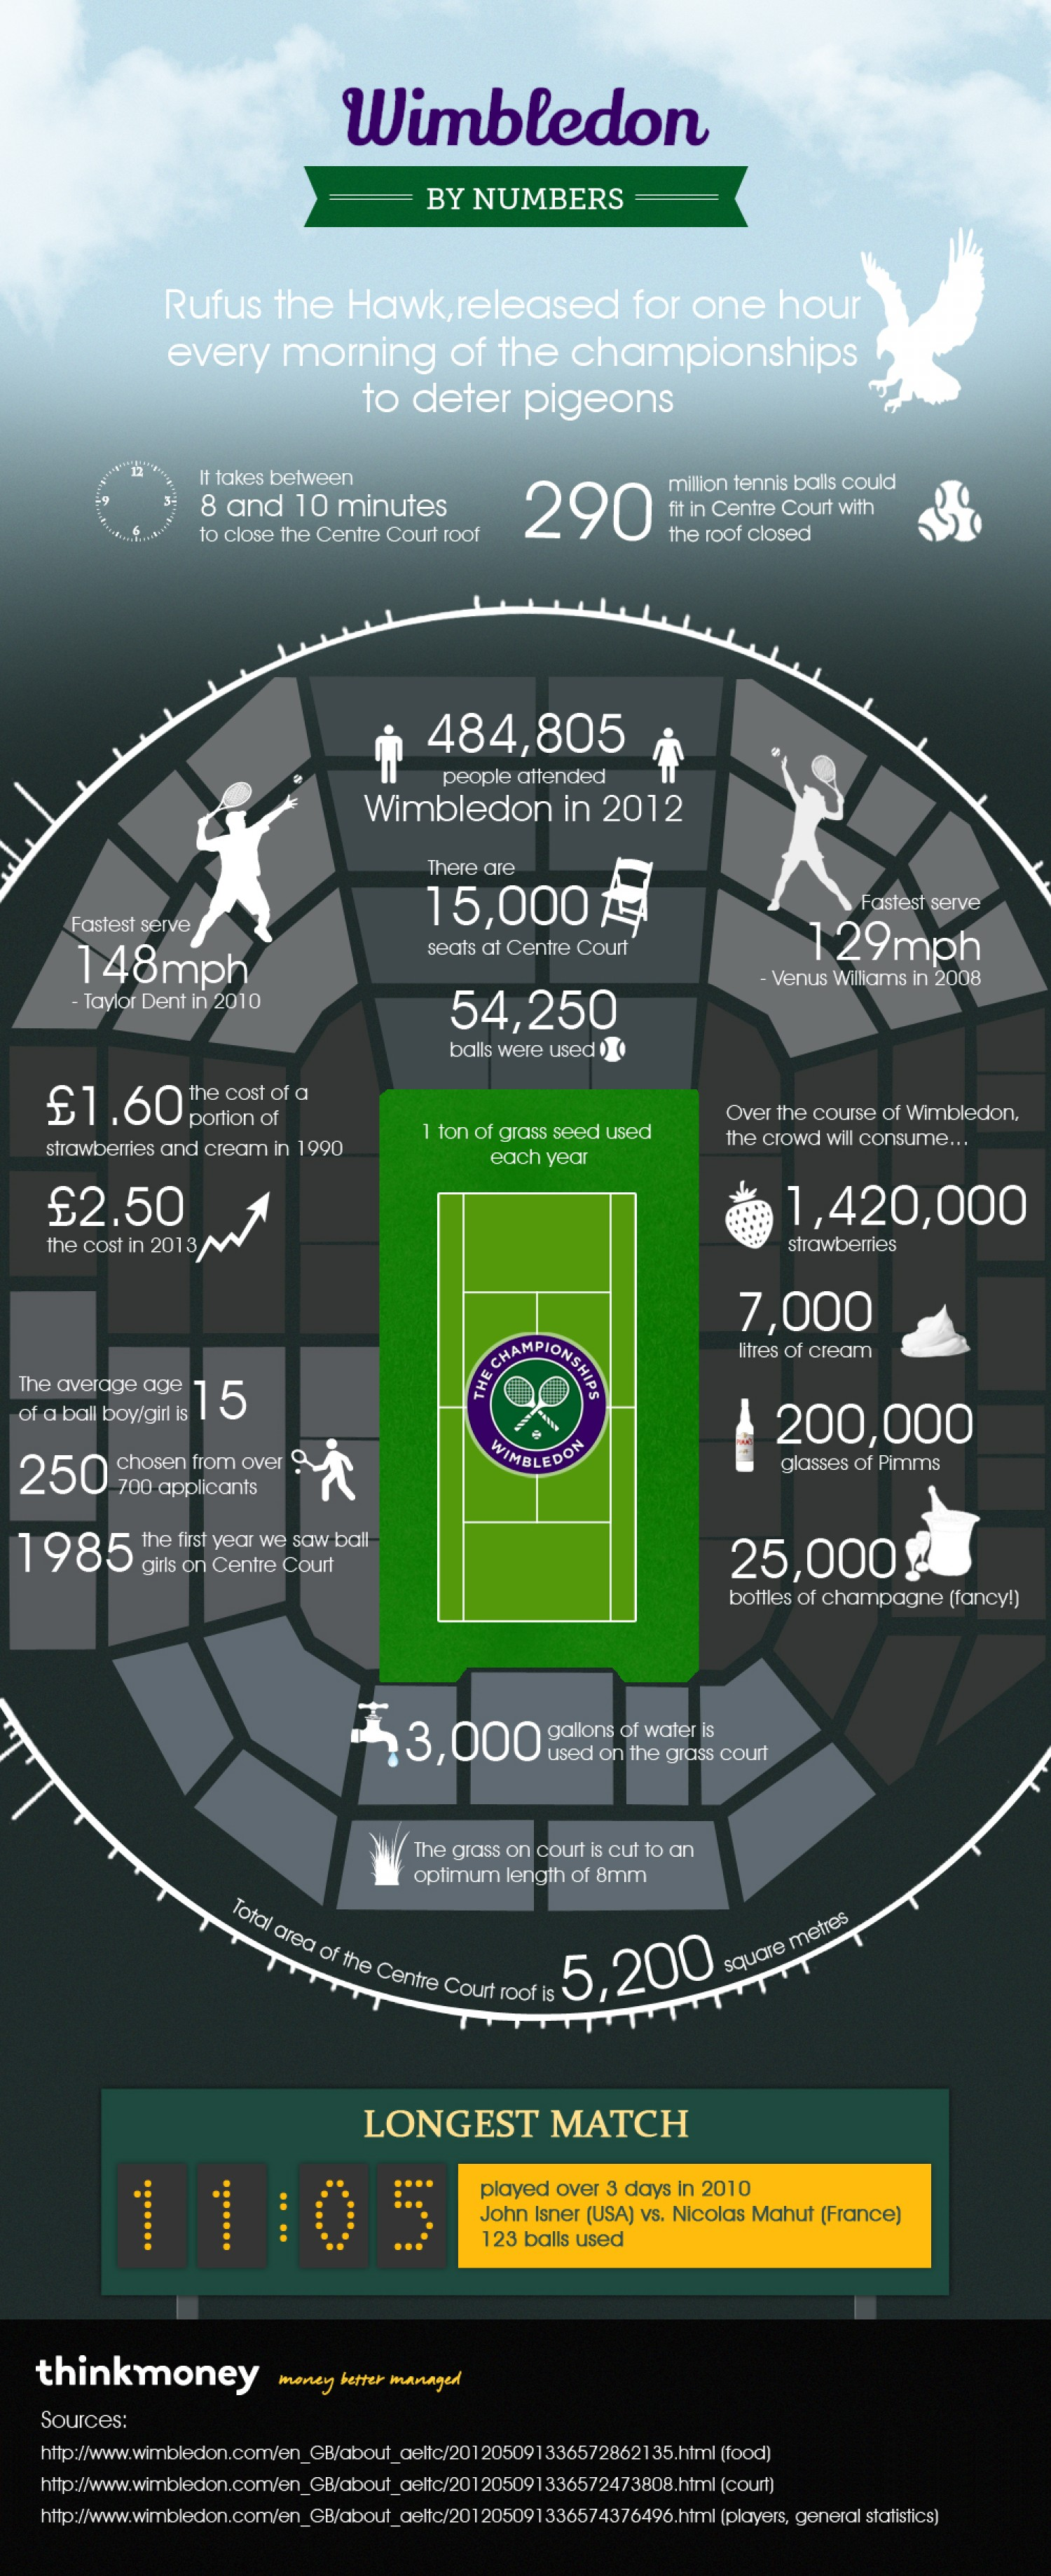 18. Wimbledon by numbers